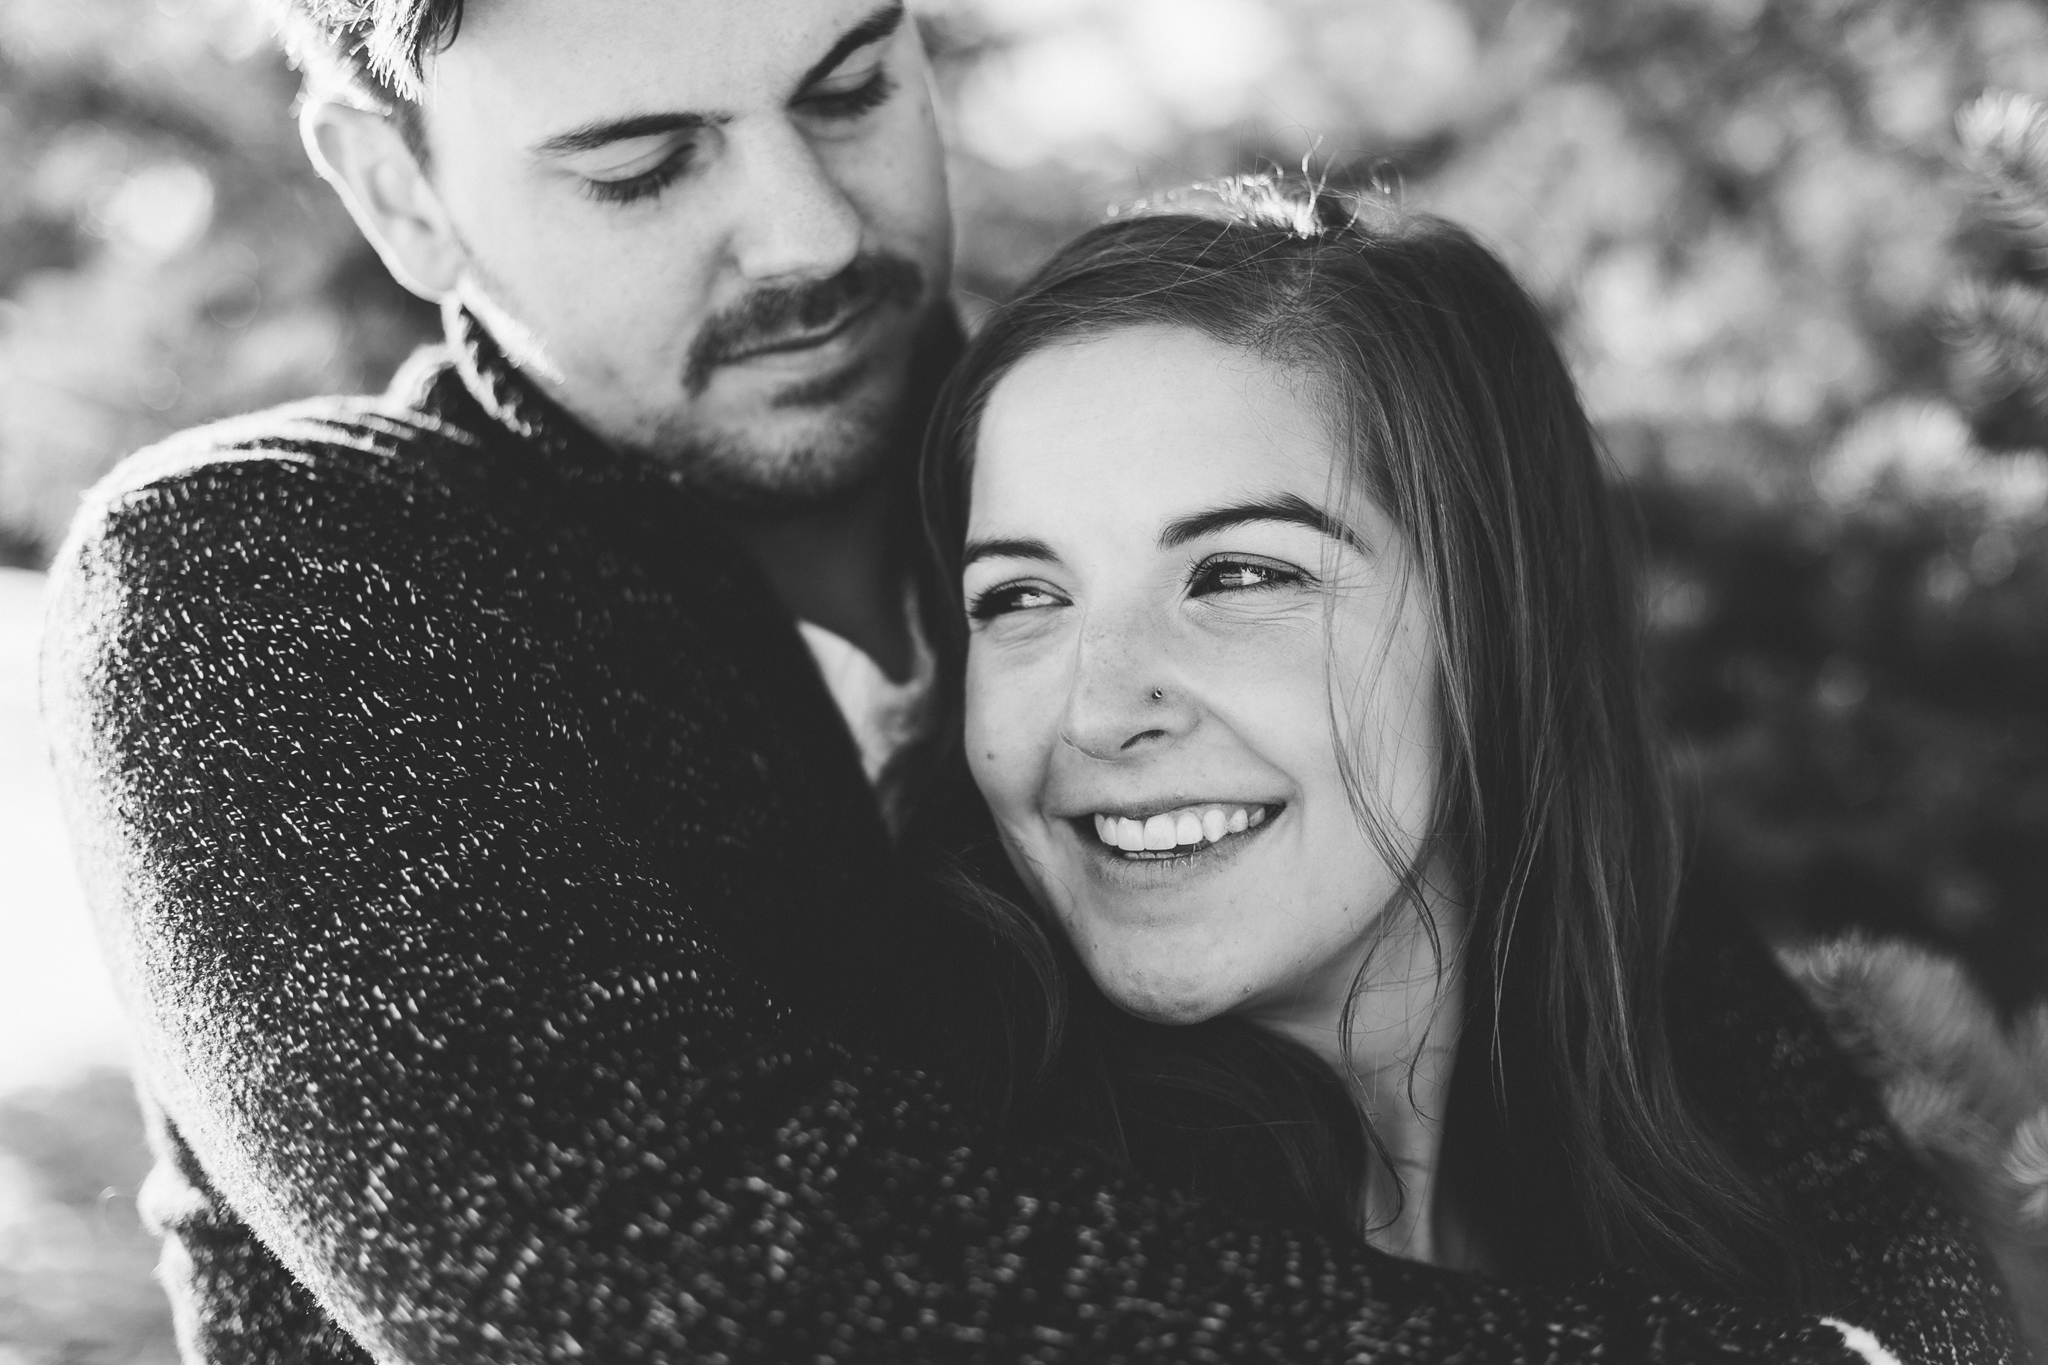 lethbridge-photographer-love-and-be-loved-photography-winter-engagement-emma-tanner-picture-image-photo-43.jpg